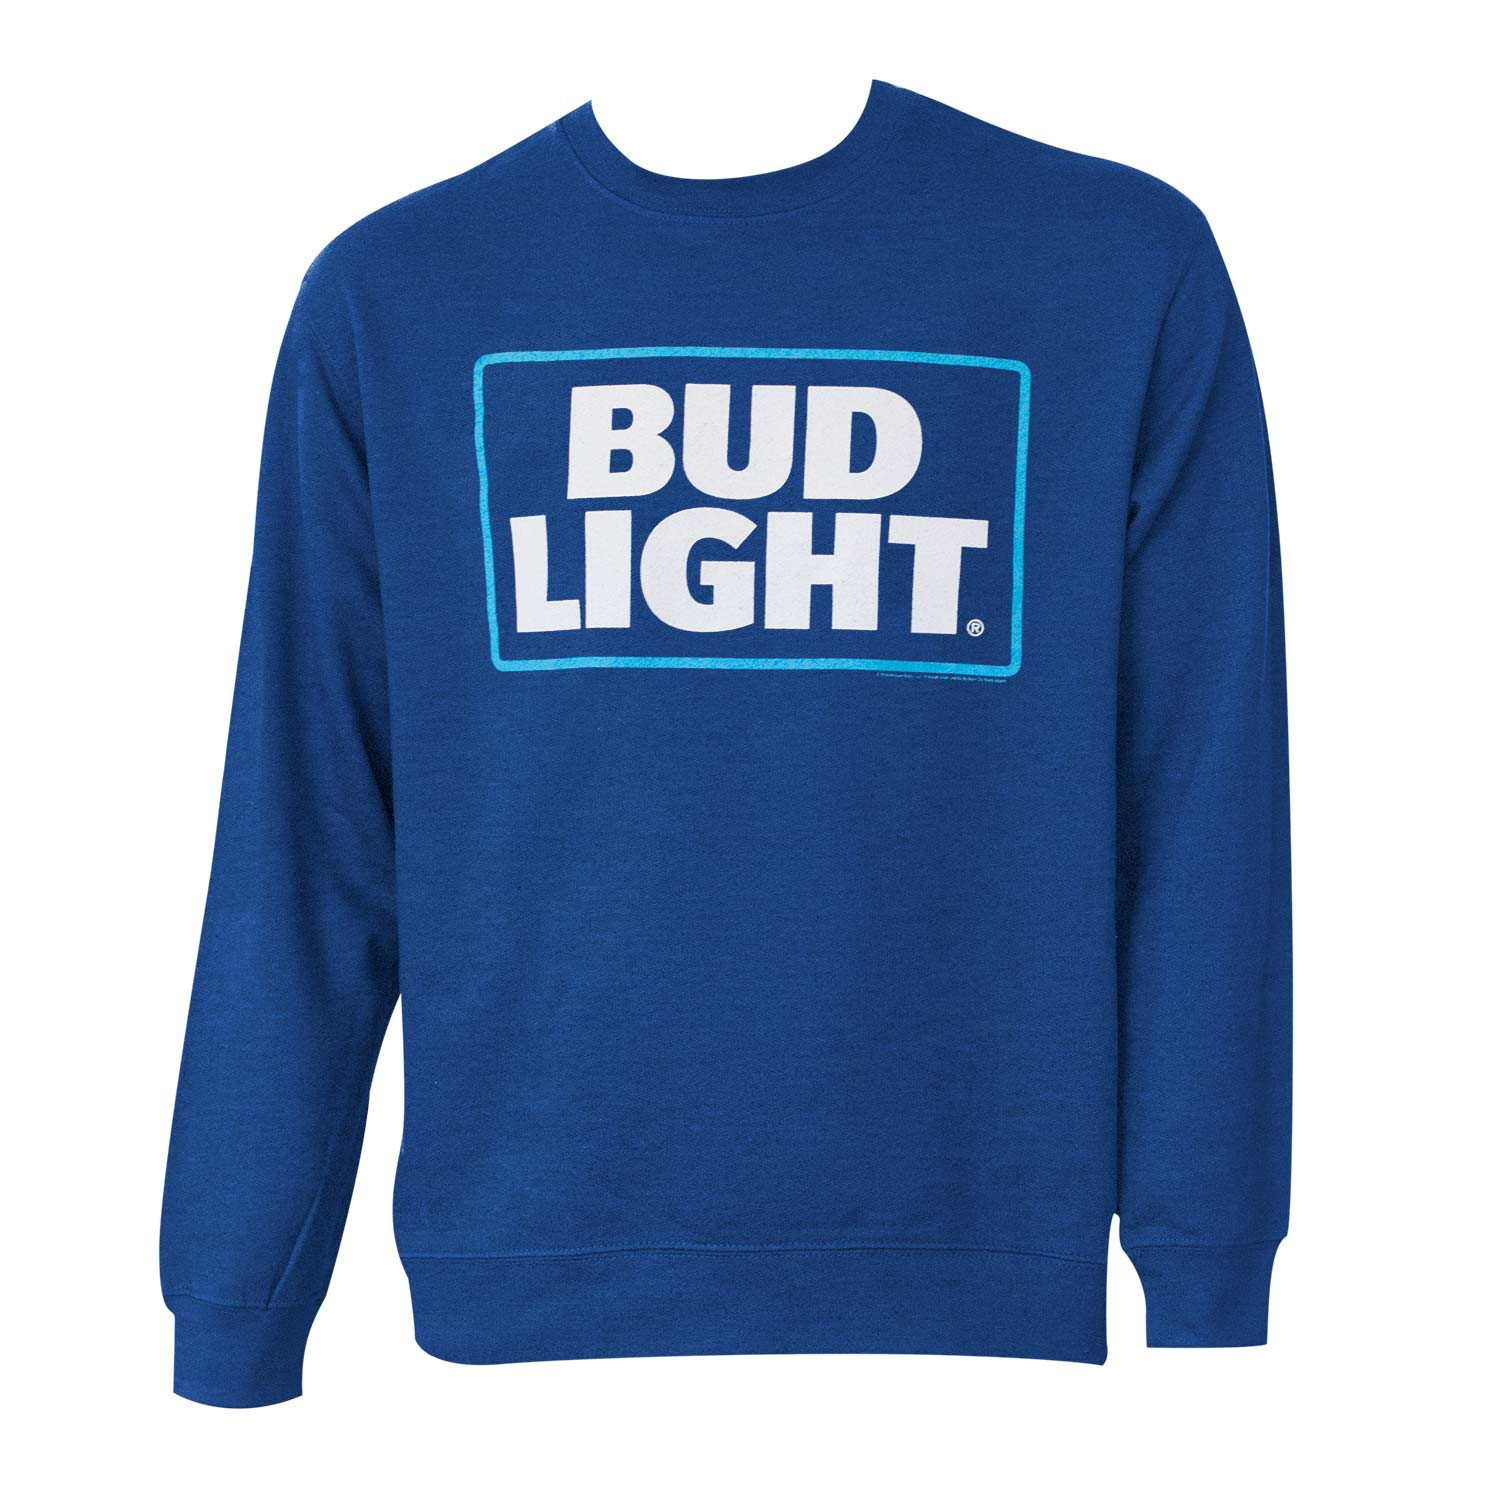 Bud Light Crewneck Navy Sweatshirt